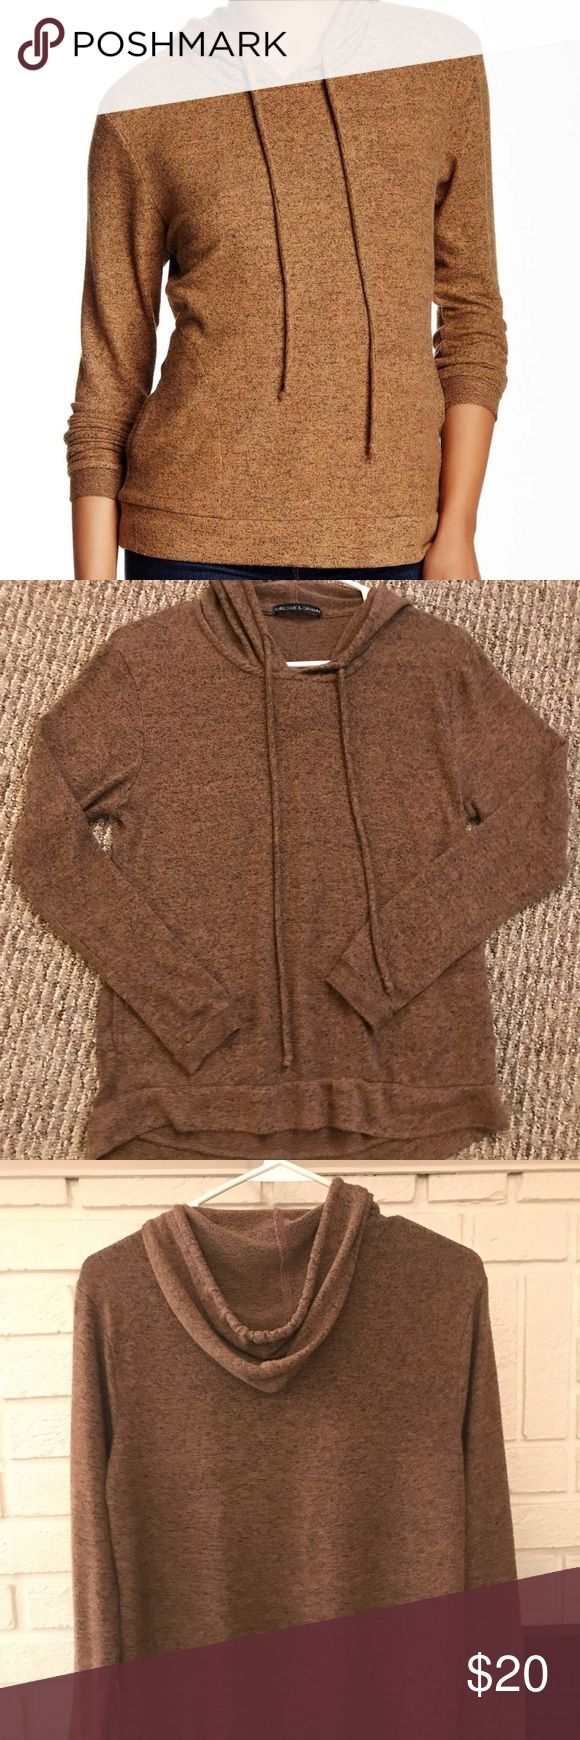 Marlowe & Graham sweatshirt (nord. rack) sz SM Great condition & SO SOFT + COZY 💕 from Nordstrom Rack— this is my favorite sweatshirt, EVER. The color is phenomenal (an orangish-yellowish color mixed with dark grey/black — grainy style color) ...light/medium weight! Size small.   Only selling because I lost it (& it was my favorite 😩) so I bought another one, and then I found my old one! 🤓 So now I have two! You'd be a very lucky girl to add this life-changing sweatshirt to your closet ☺️…